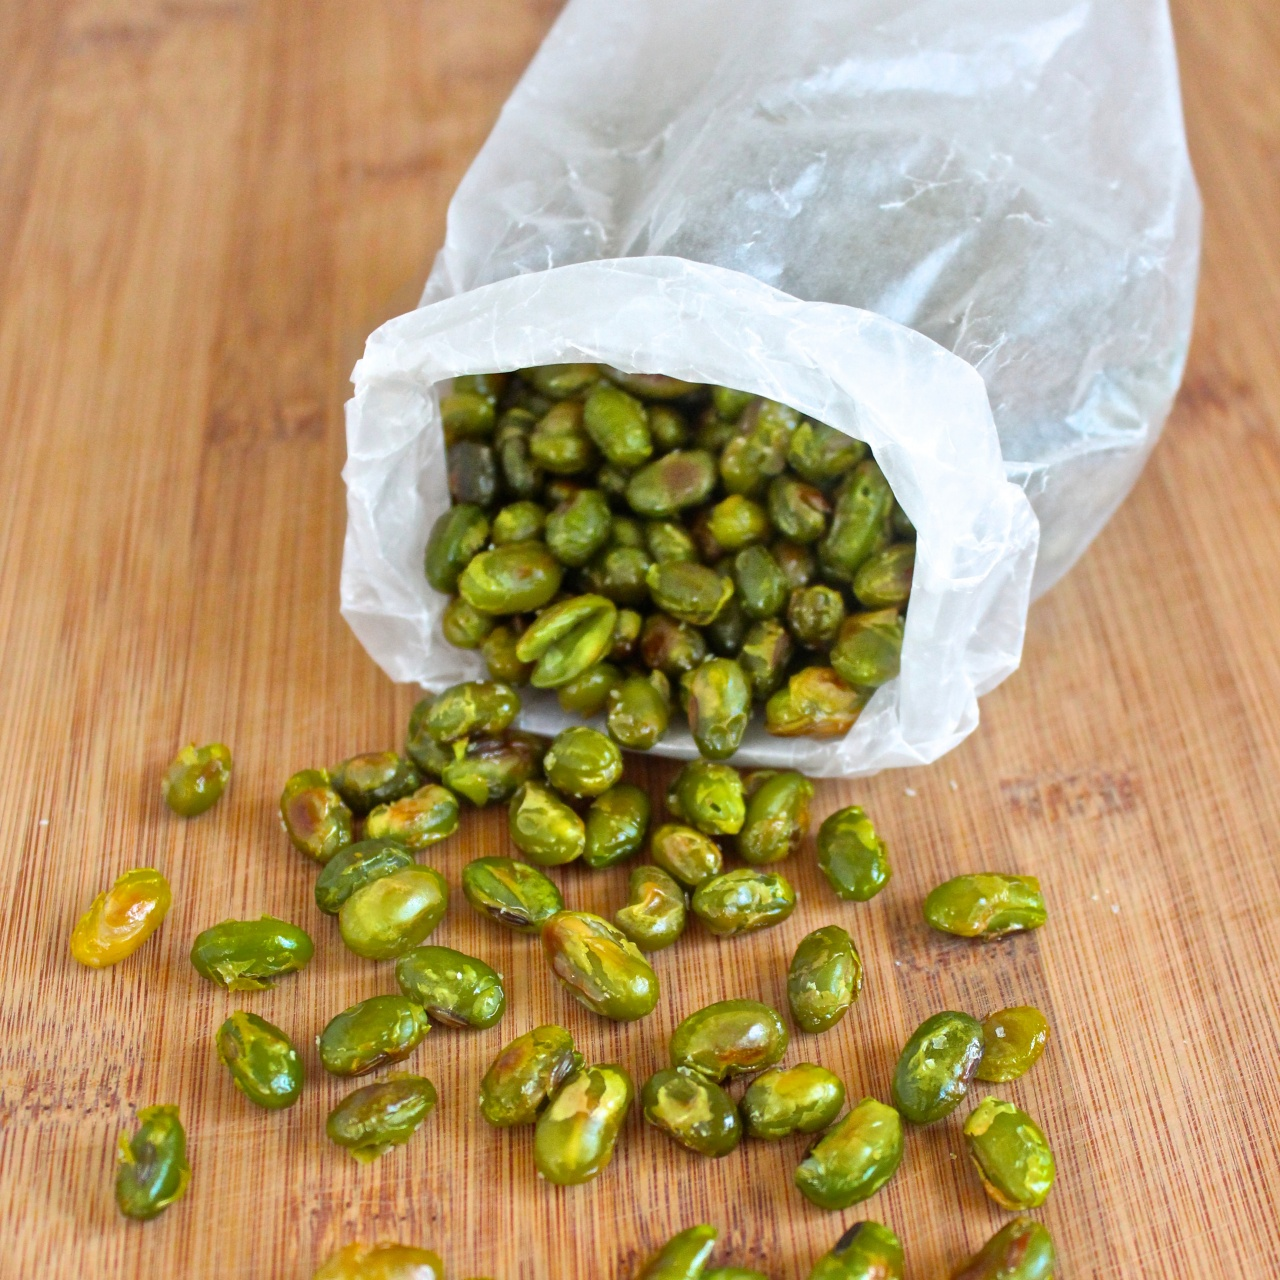 edamame snack recipes - photo #18